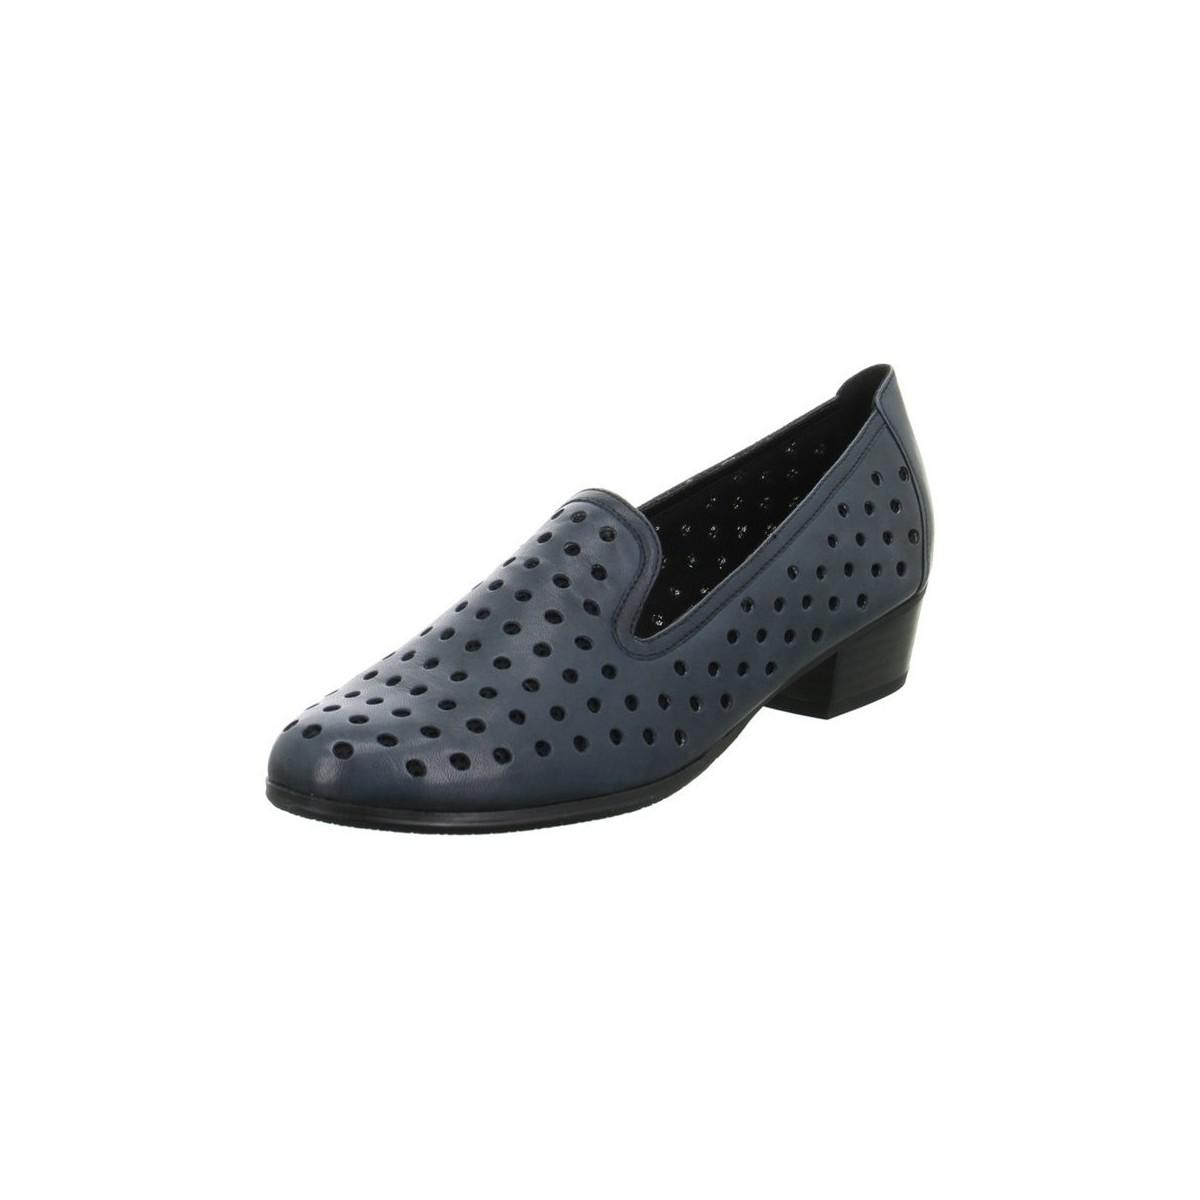 Outlet Footlocker Pictures Outlet Cost Gerry Weber G5300190100 women's Loafers / Casual Shoes in Cheap Sale Geniue Stockist Outlet Low Shipping Clearance Looking For fpHNEl0XaT